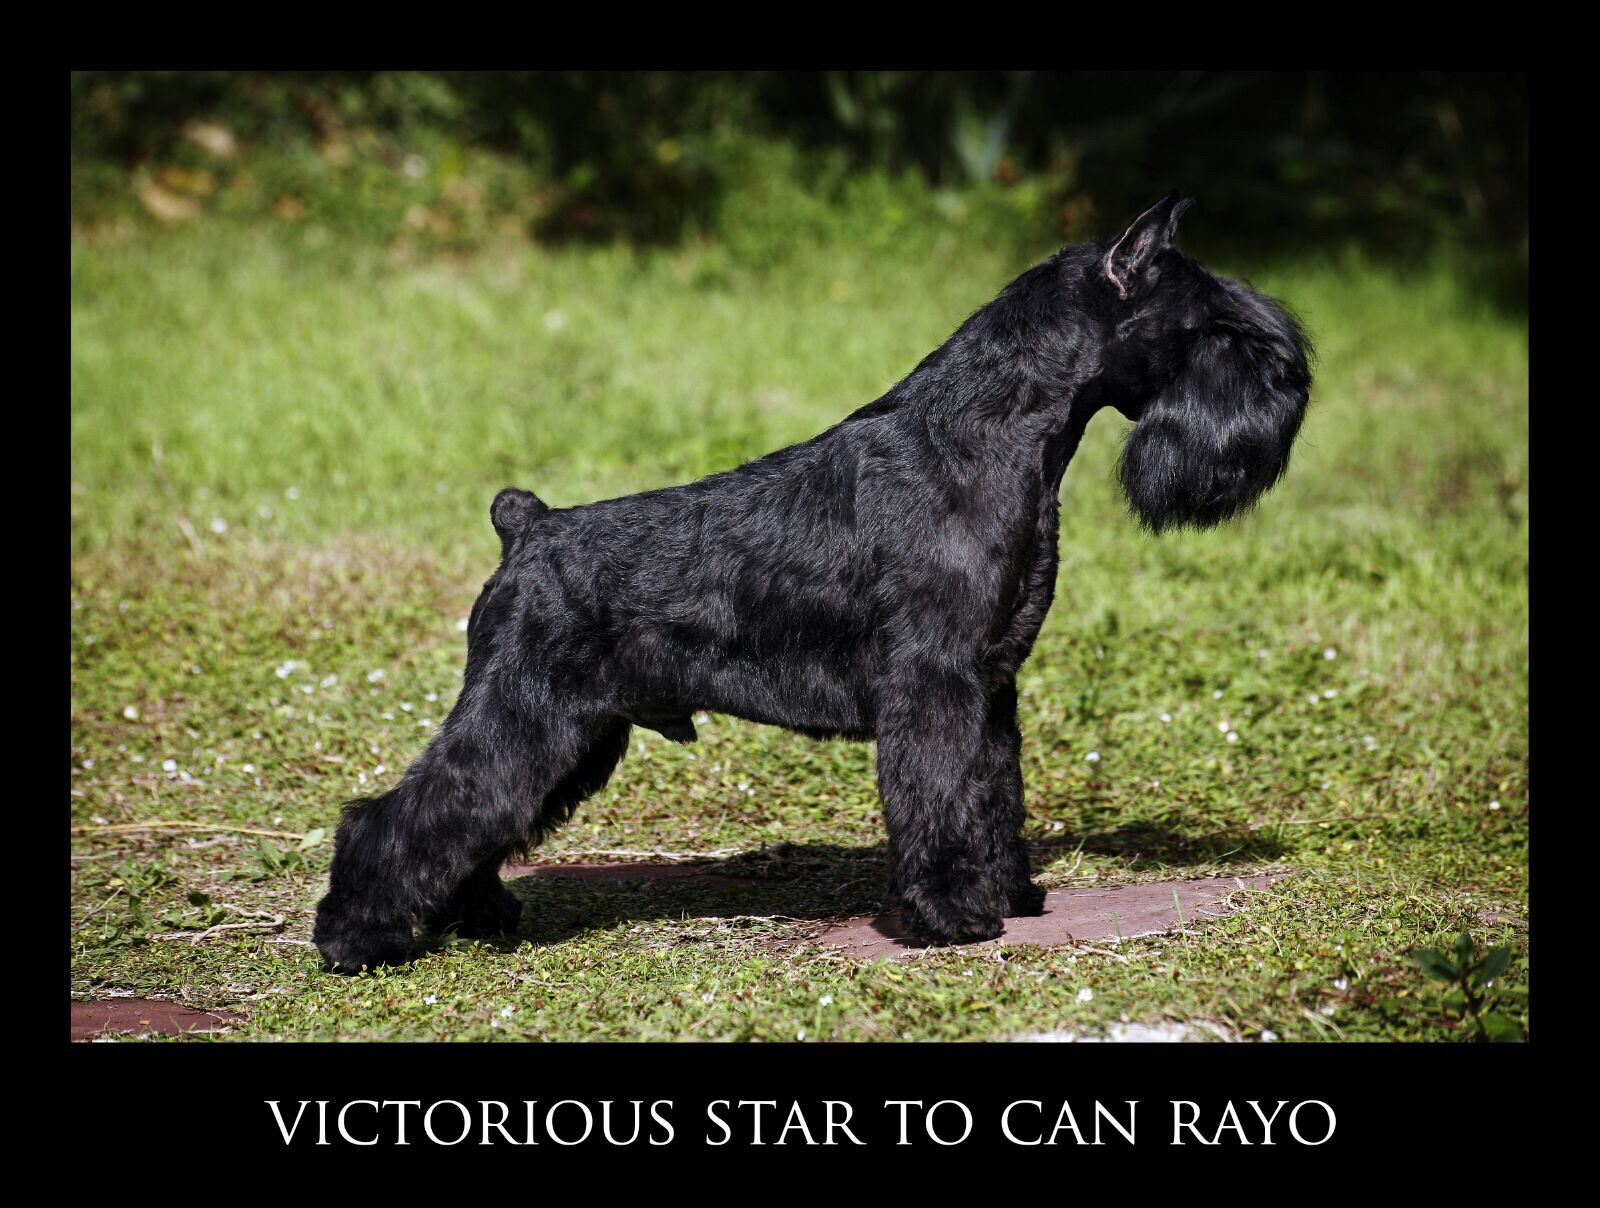 Victorious Star to Can Rayo-Schnauzer Miniatura Negro